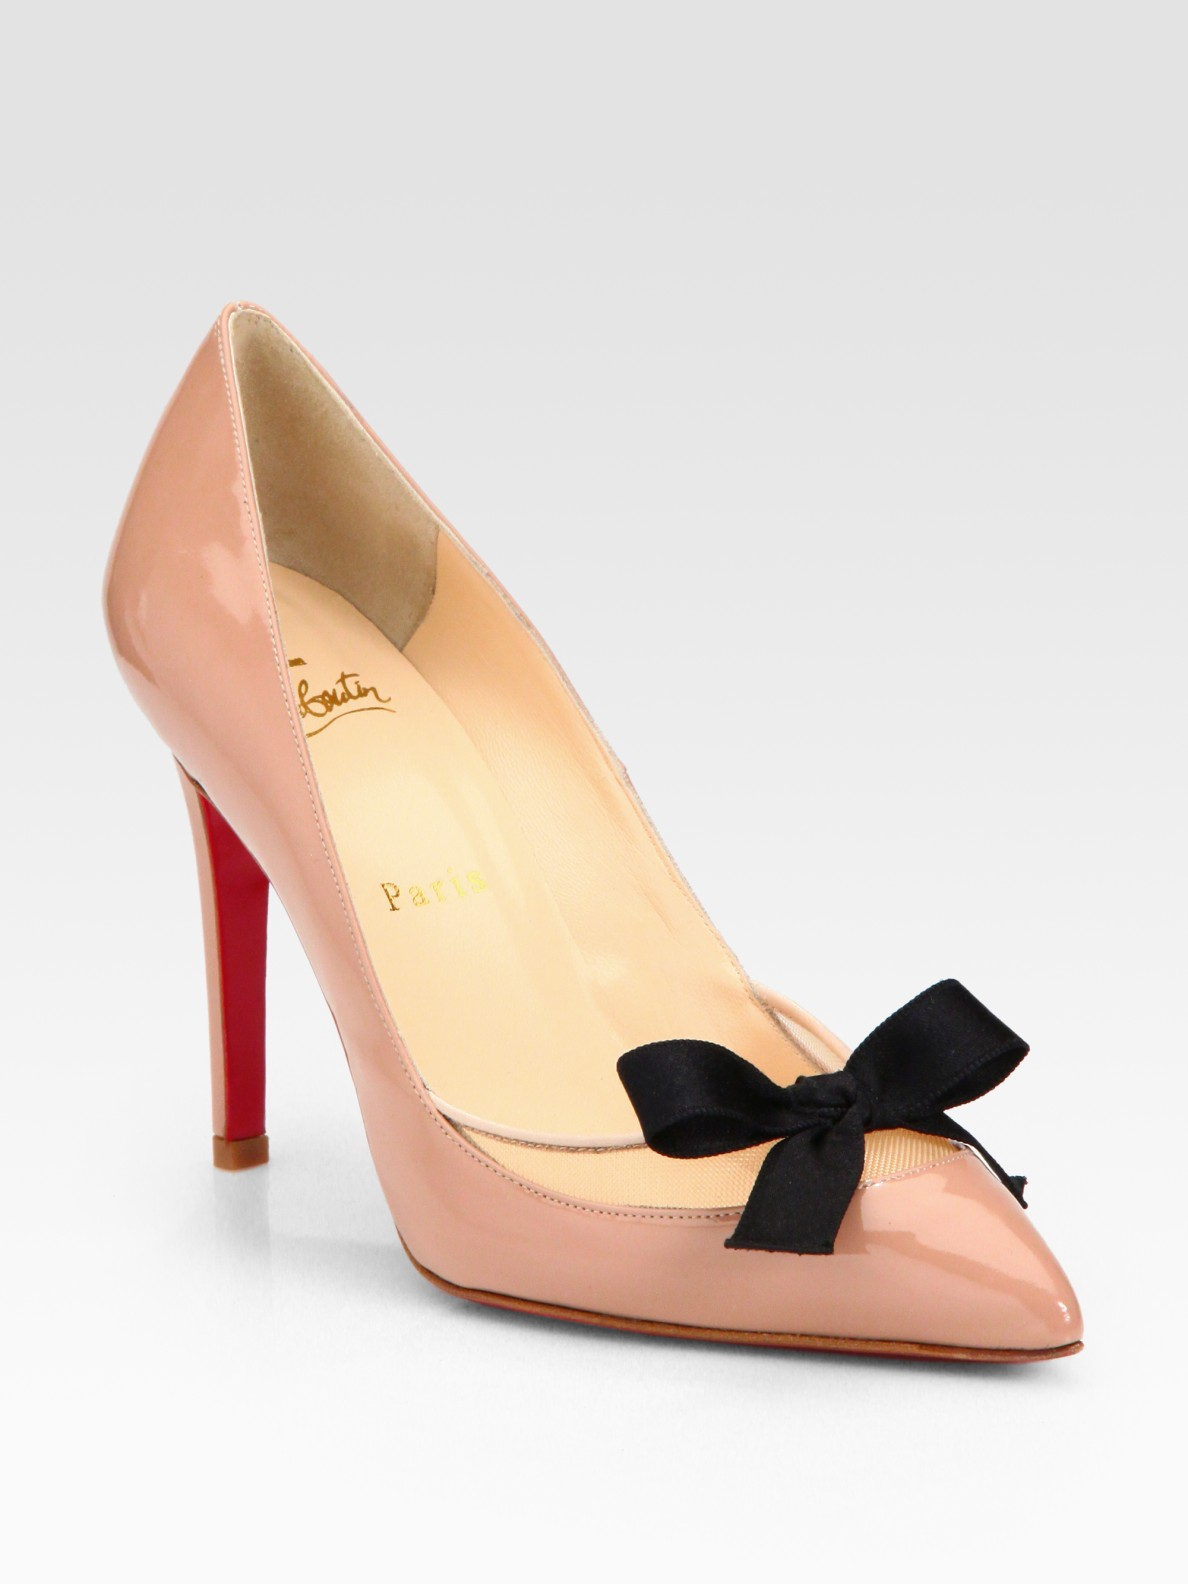 dad666af167 Christian Louboutin Pink Patent Leather Bow Pumps